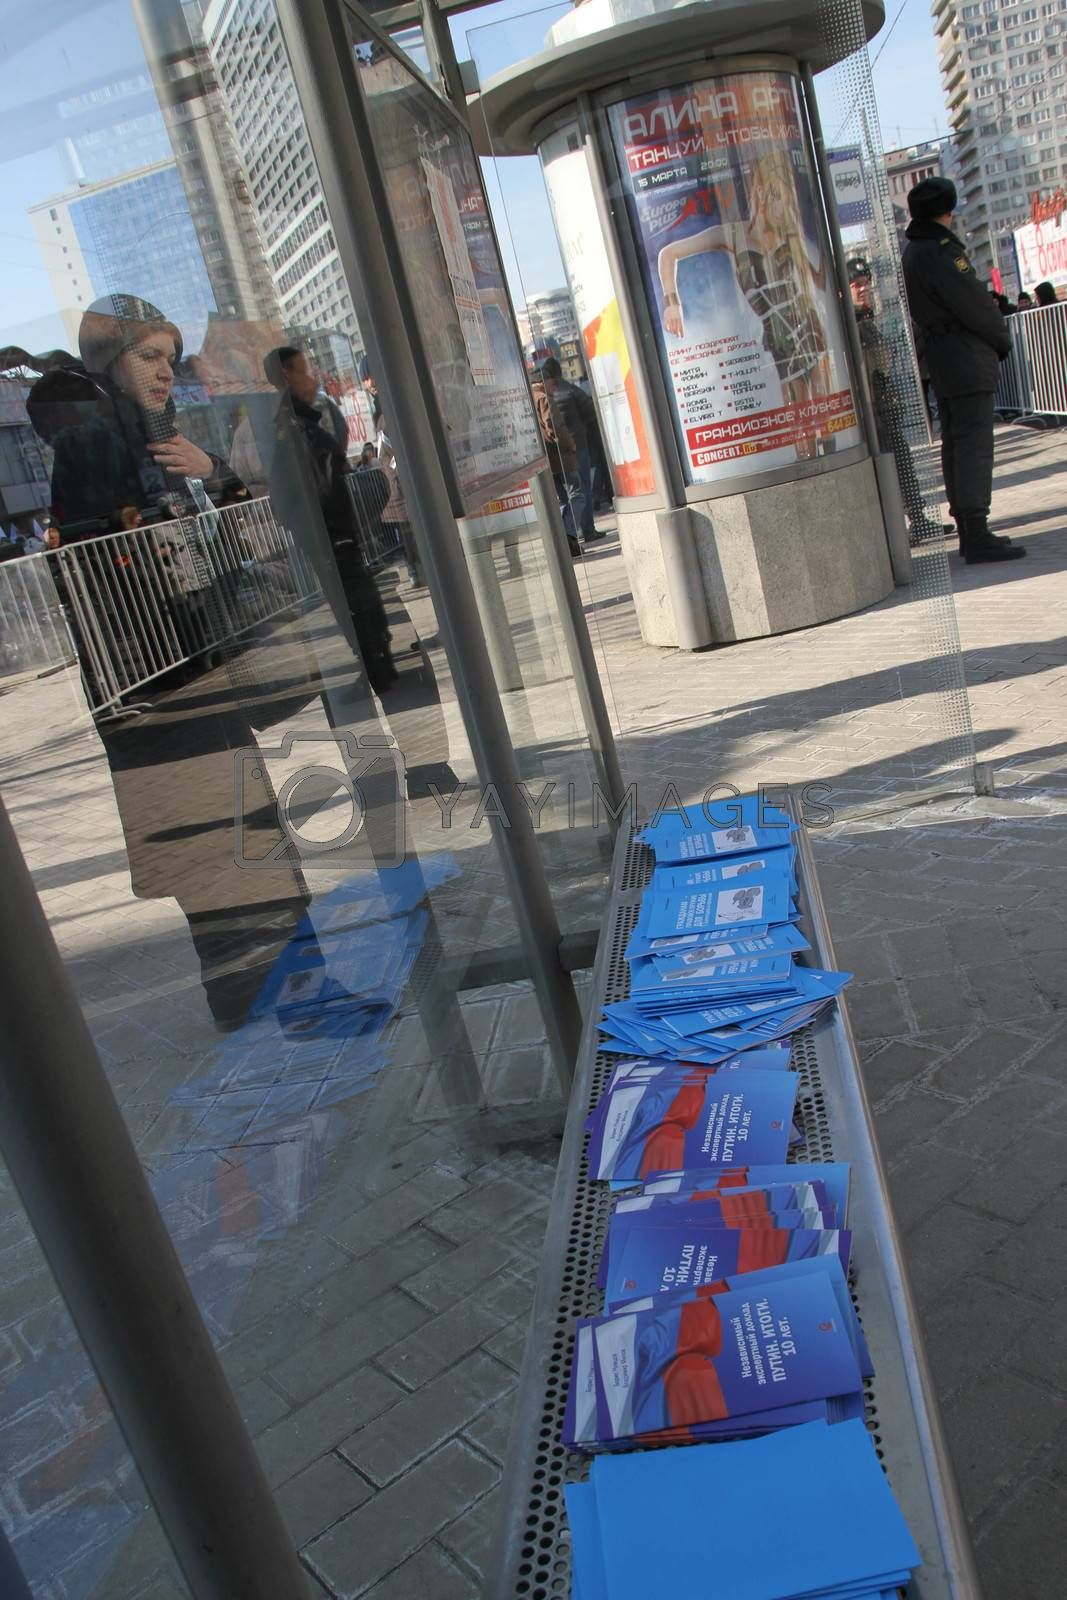 An independent report by Boris Nemtsov Putin Results laid out at the bus stop next to the opposition rally by olegkozyrev